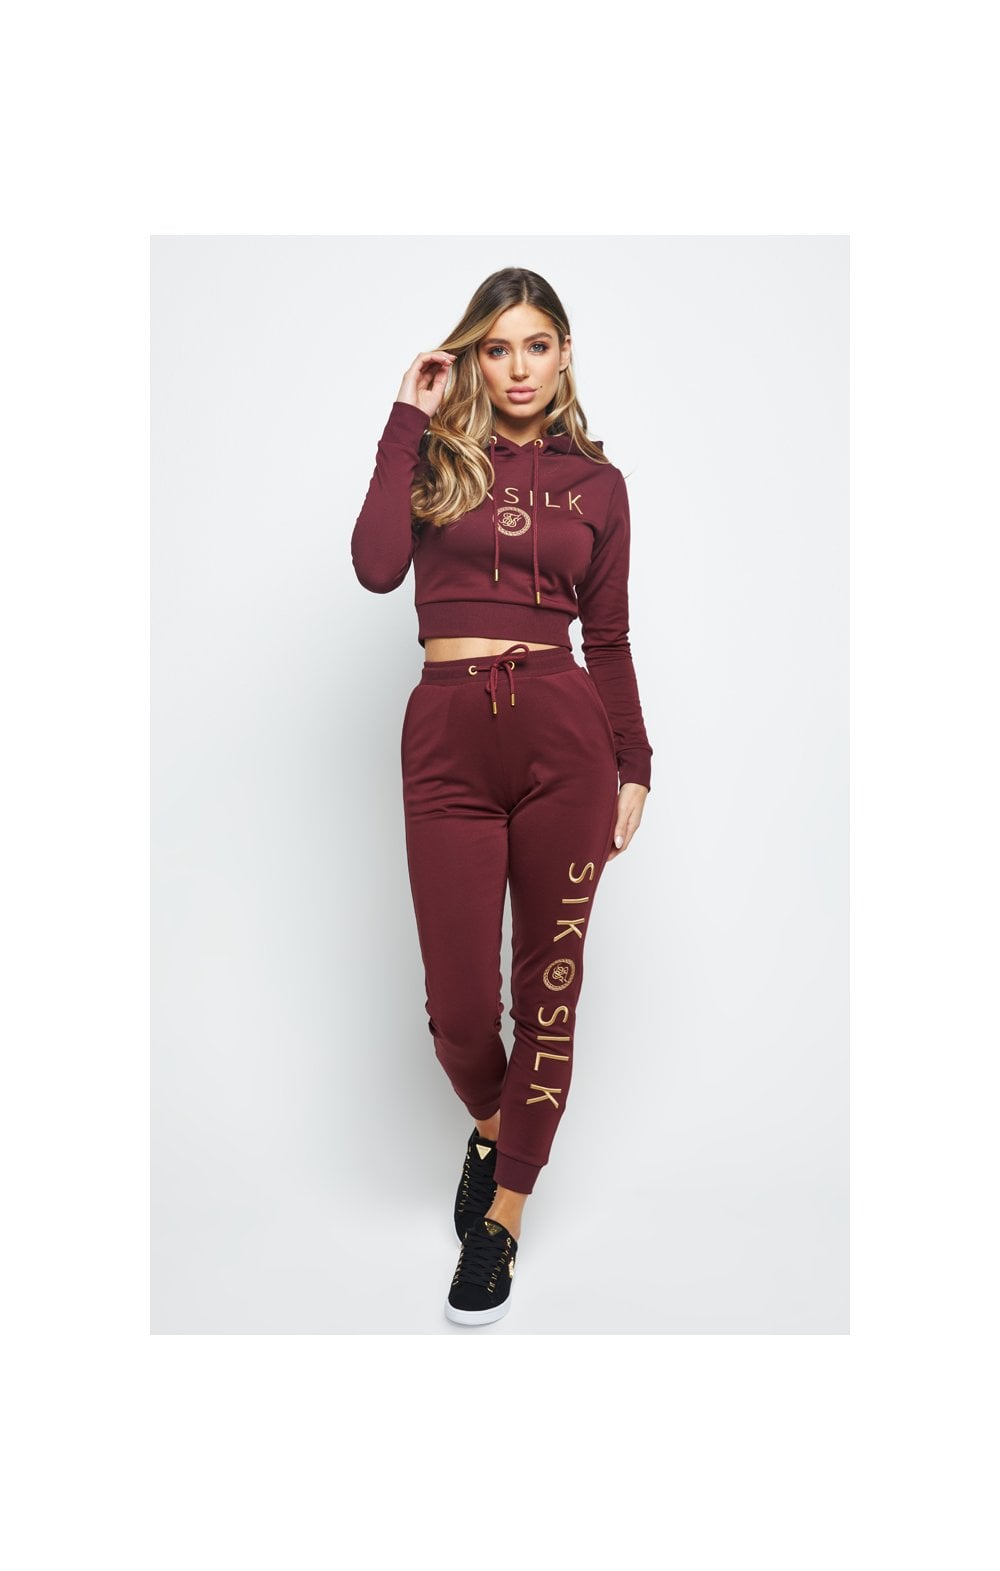 SikSilk Eyelet Mesh Track Top - Burgundy (4)